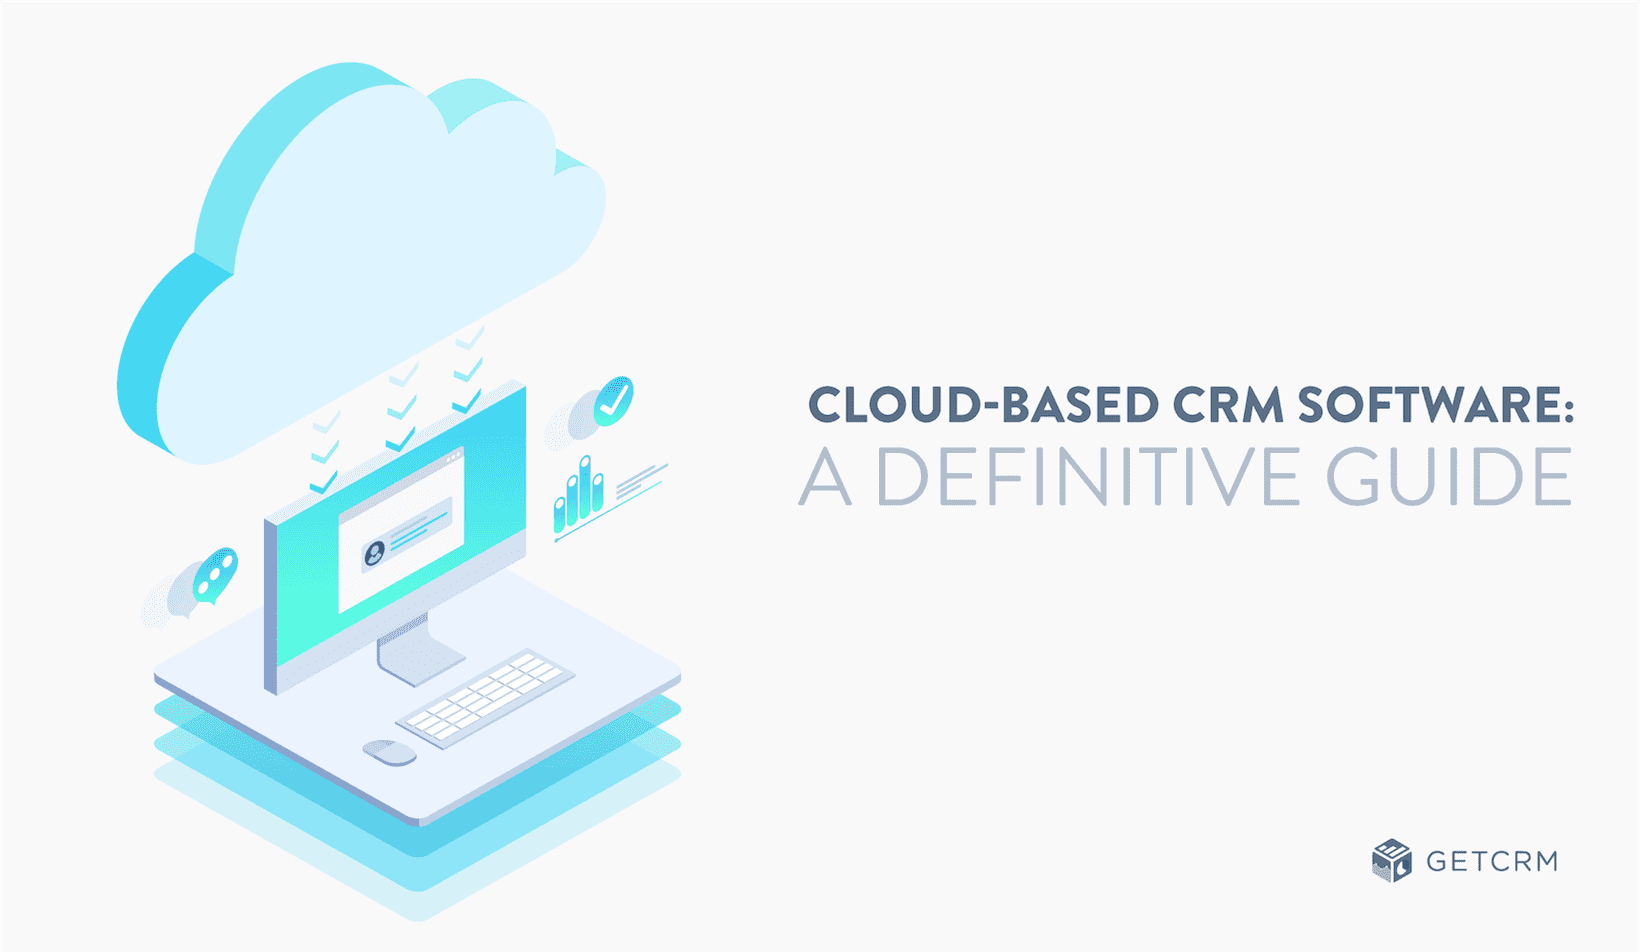 Cloud-based CRM Software: A Definitive Guide